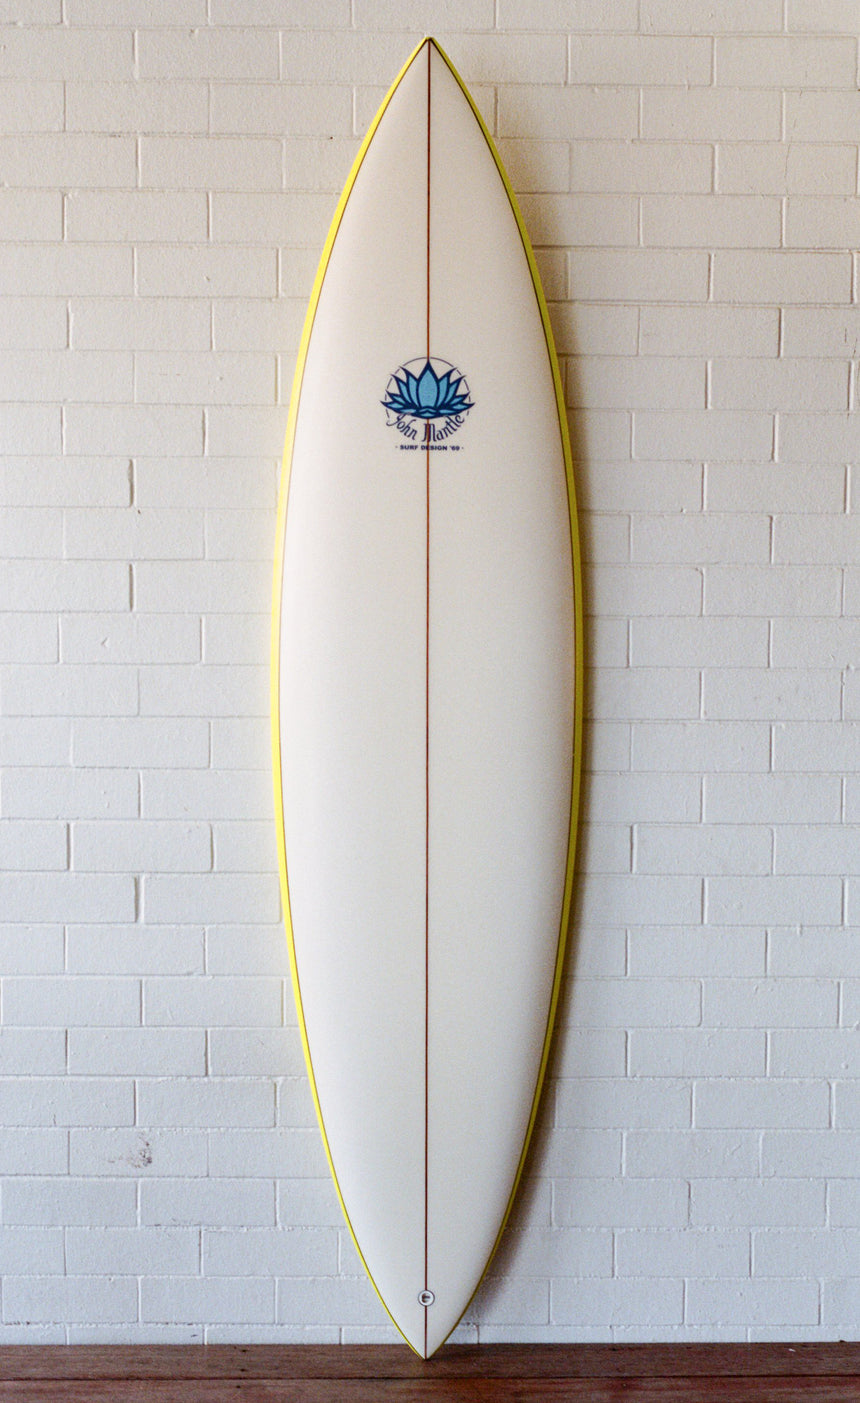 John Mantle Vintage Single Fin